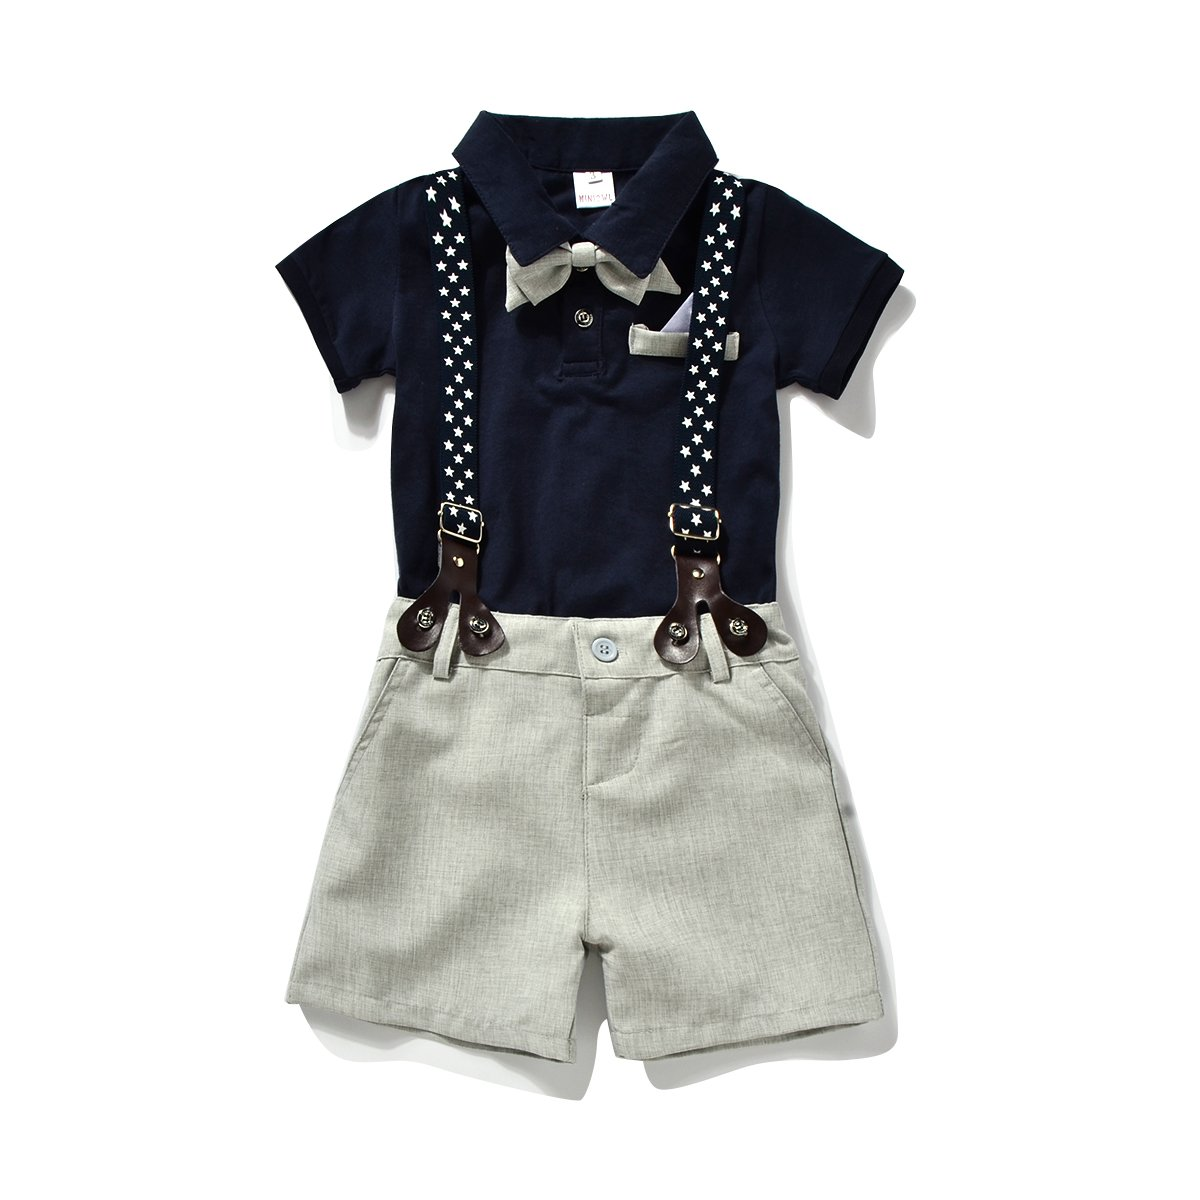 Miniowl ® Toddler Boys 2 PCS Set Gentleman Bowtie Polo T-shirt Bid Shorts Overalls (4t, Black)